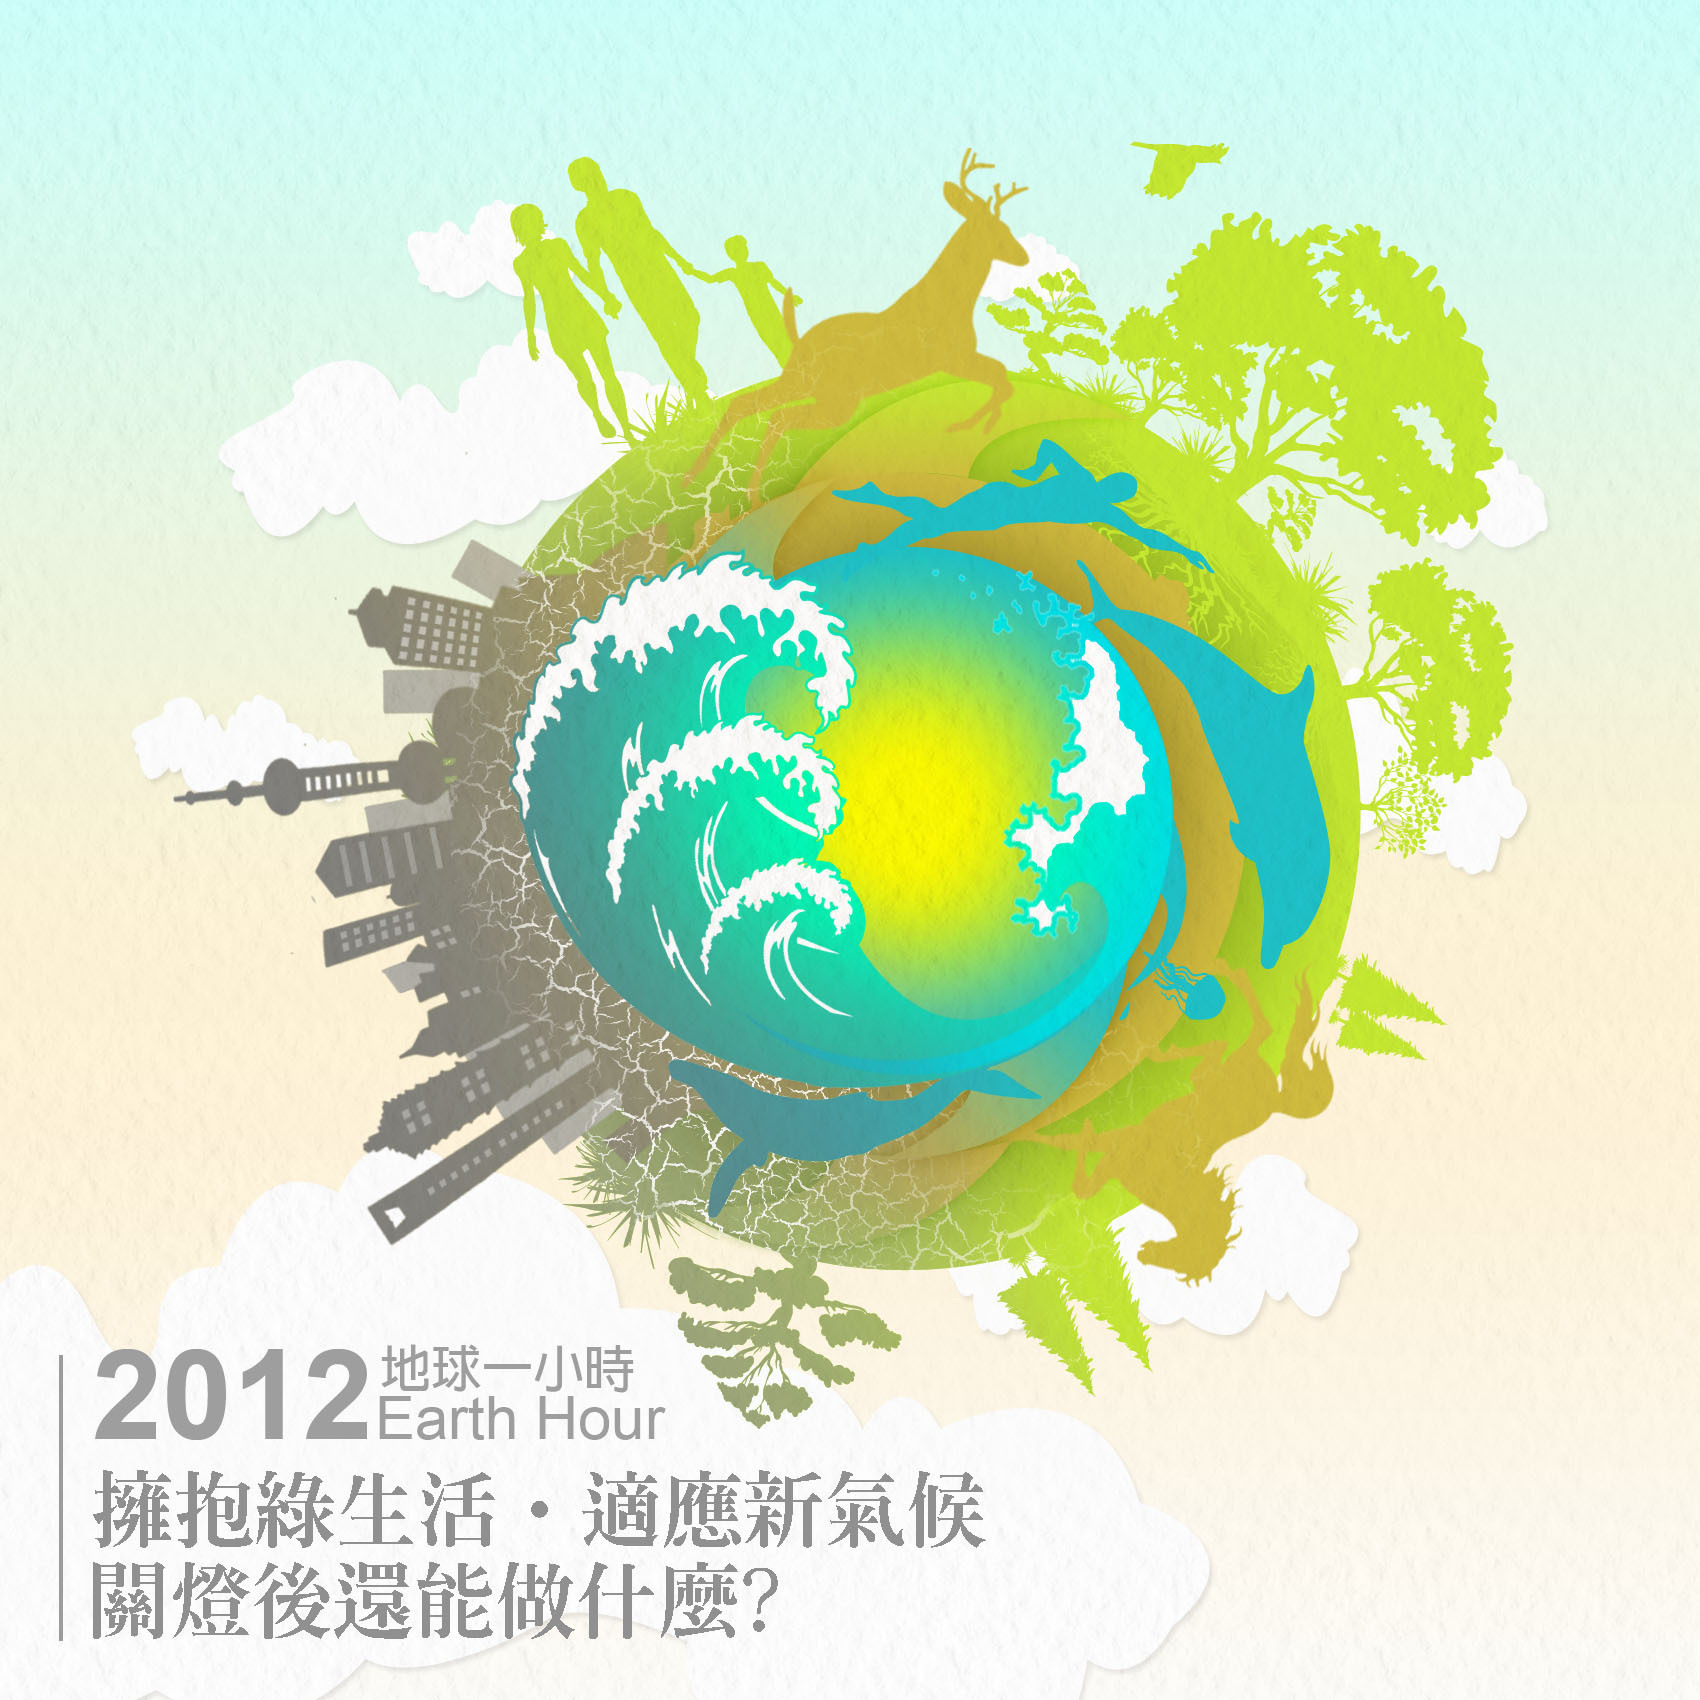 This Earth Hour 2012: 8.30pm, Saturday 31 March, celebrate your action for the planet with the people of world by switching off your lights for an hour, then go beyond the hour. 我們台灣的馬總統也出來呼籲了。  網路看到的日本樂天食品企業形象小熊呼籲圖片。  Sow荒野保護協會官方文宣海報  香港地區的地球關燈日 Earth Ho